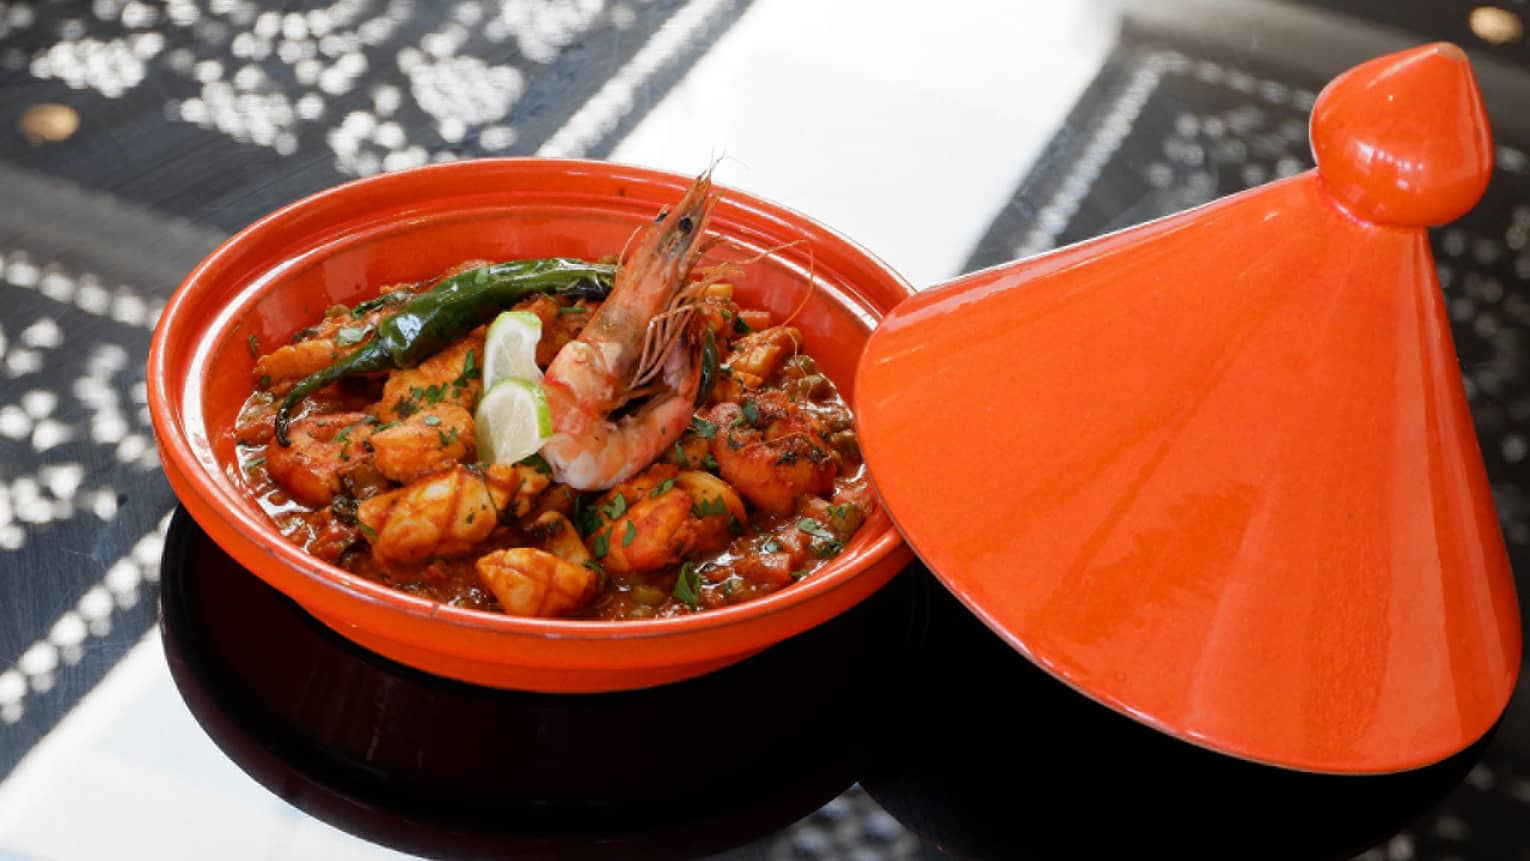 Seafood Tagine fresh fish, prawns in red sauce with lime wedge garnish in red tagine